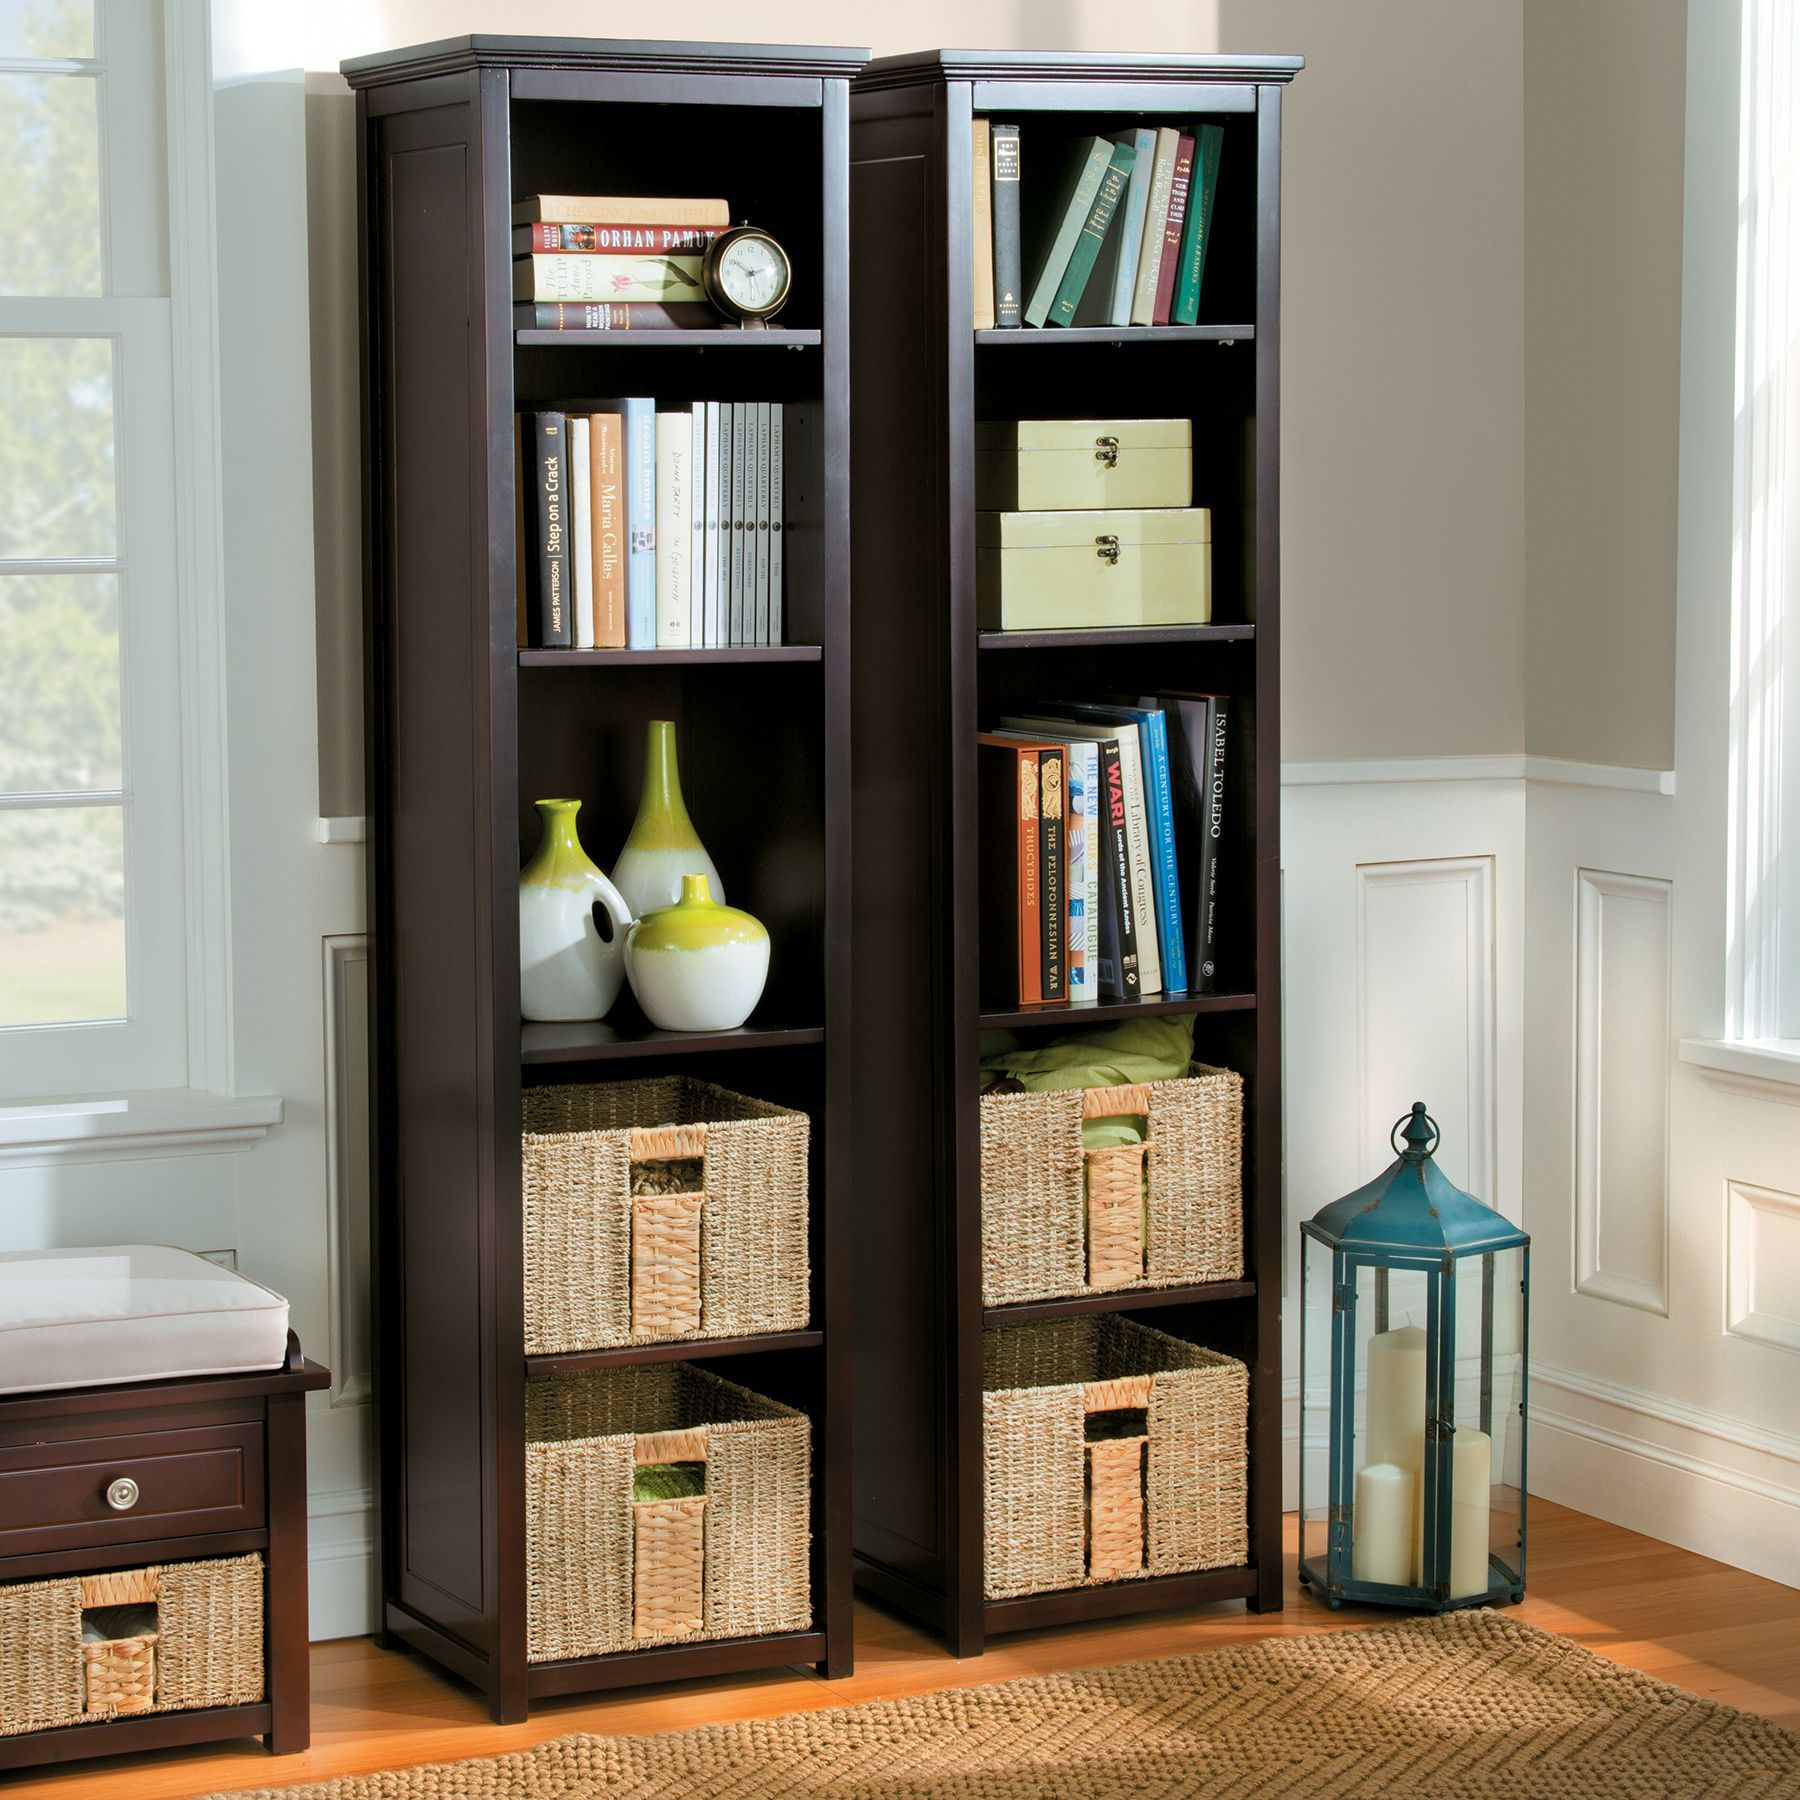 Add Stylish Organization In Tight Spaces With Our Danbury Storage Tower.  This Storage Tower Gives You Plenty Of Vertical Storage And Organization  With 5 ...